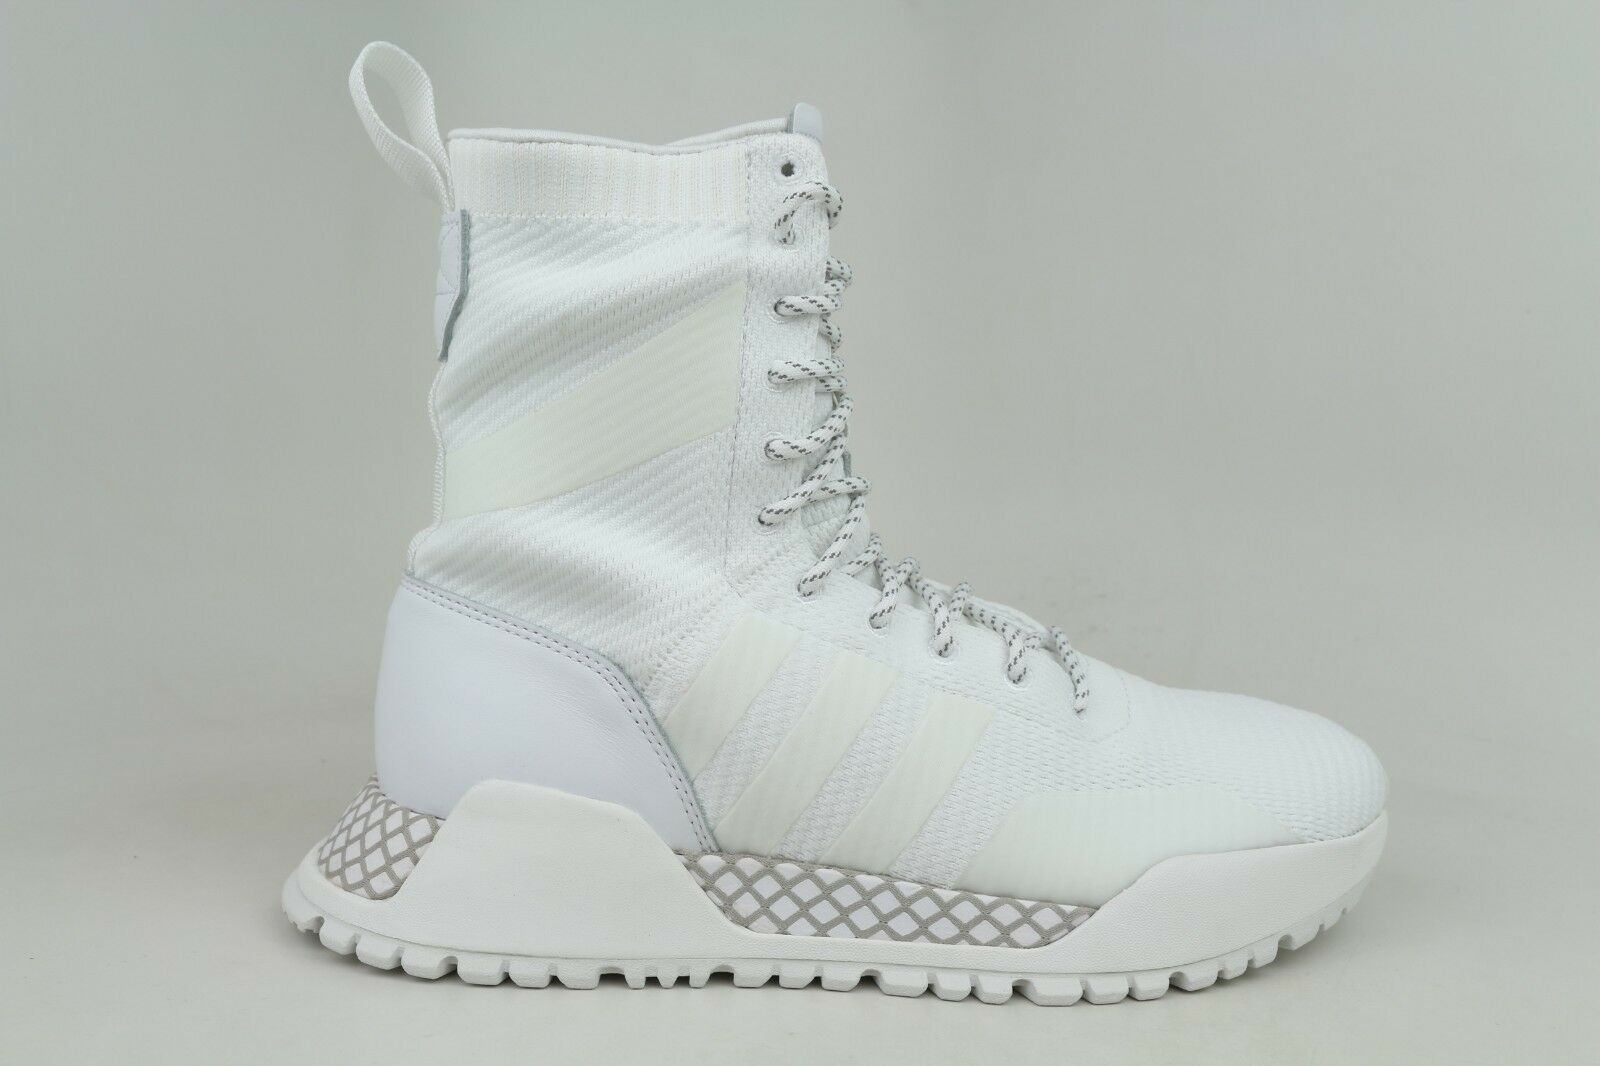 Adidas Originals AF 1.3 Pk Footwear White Mens Weatherproof Boots BY3007 1801-30